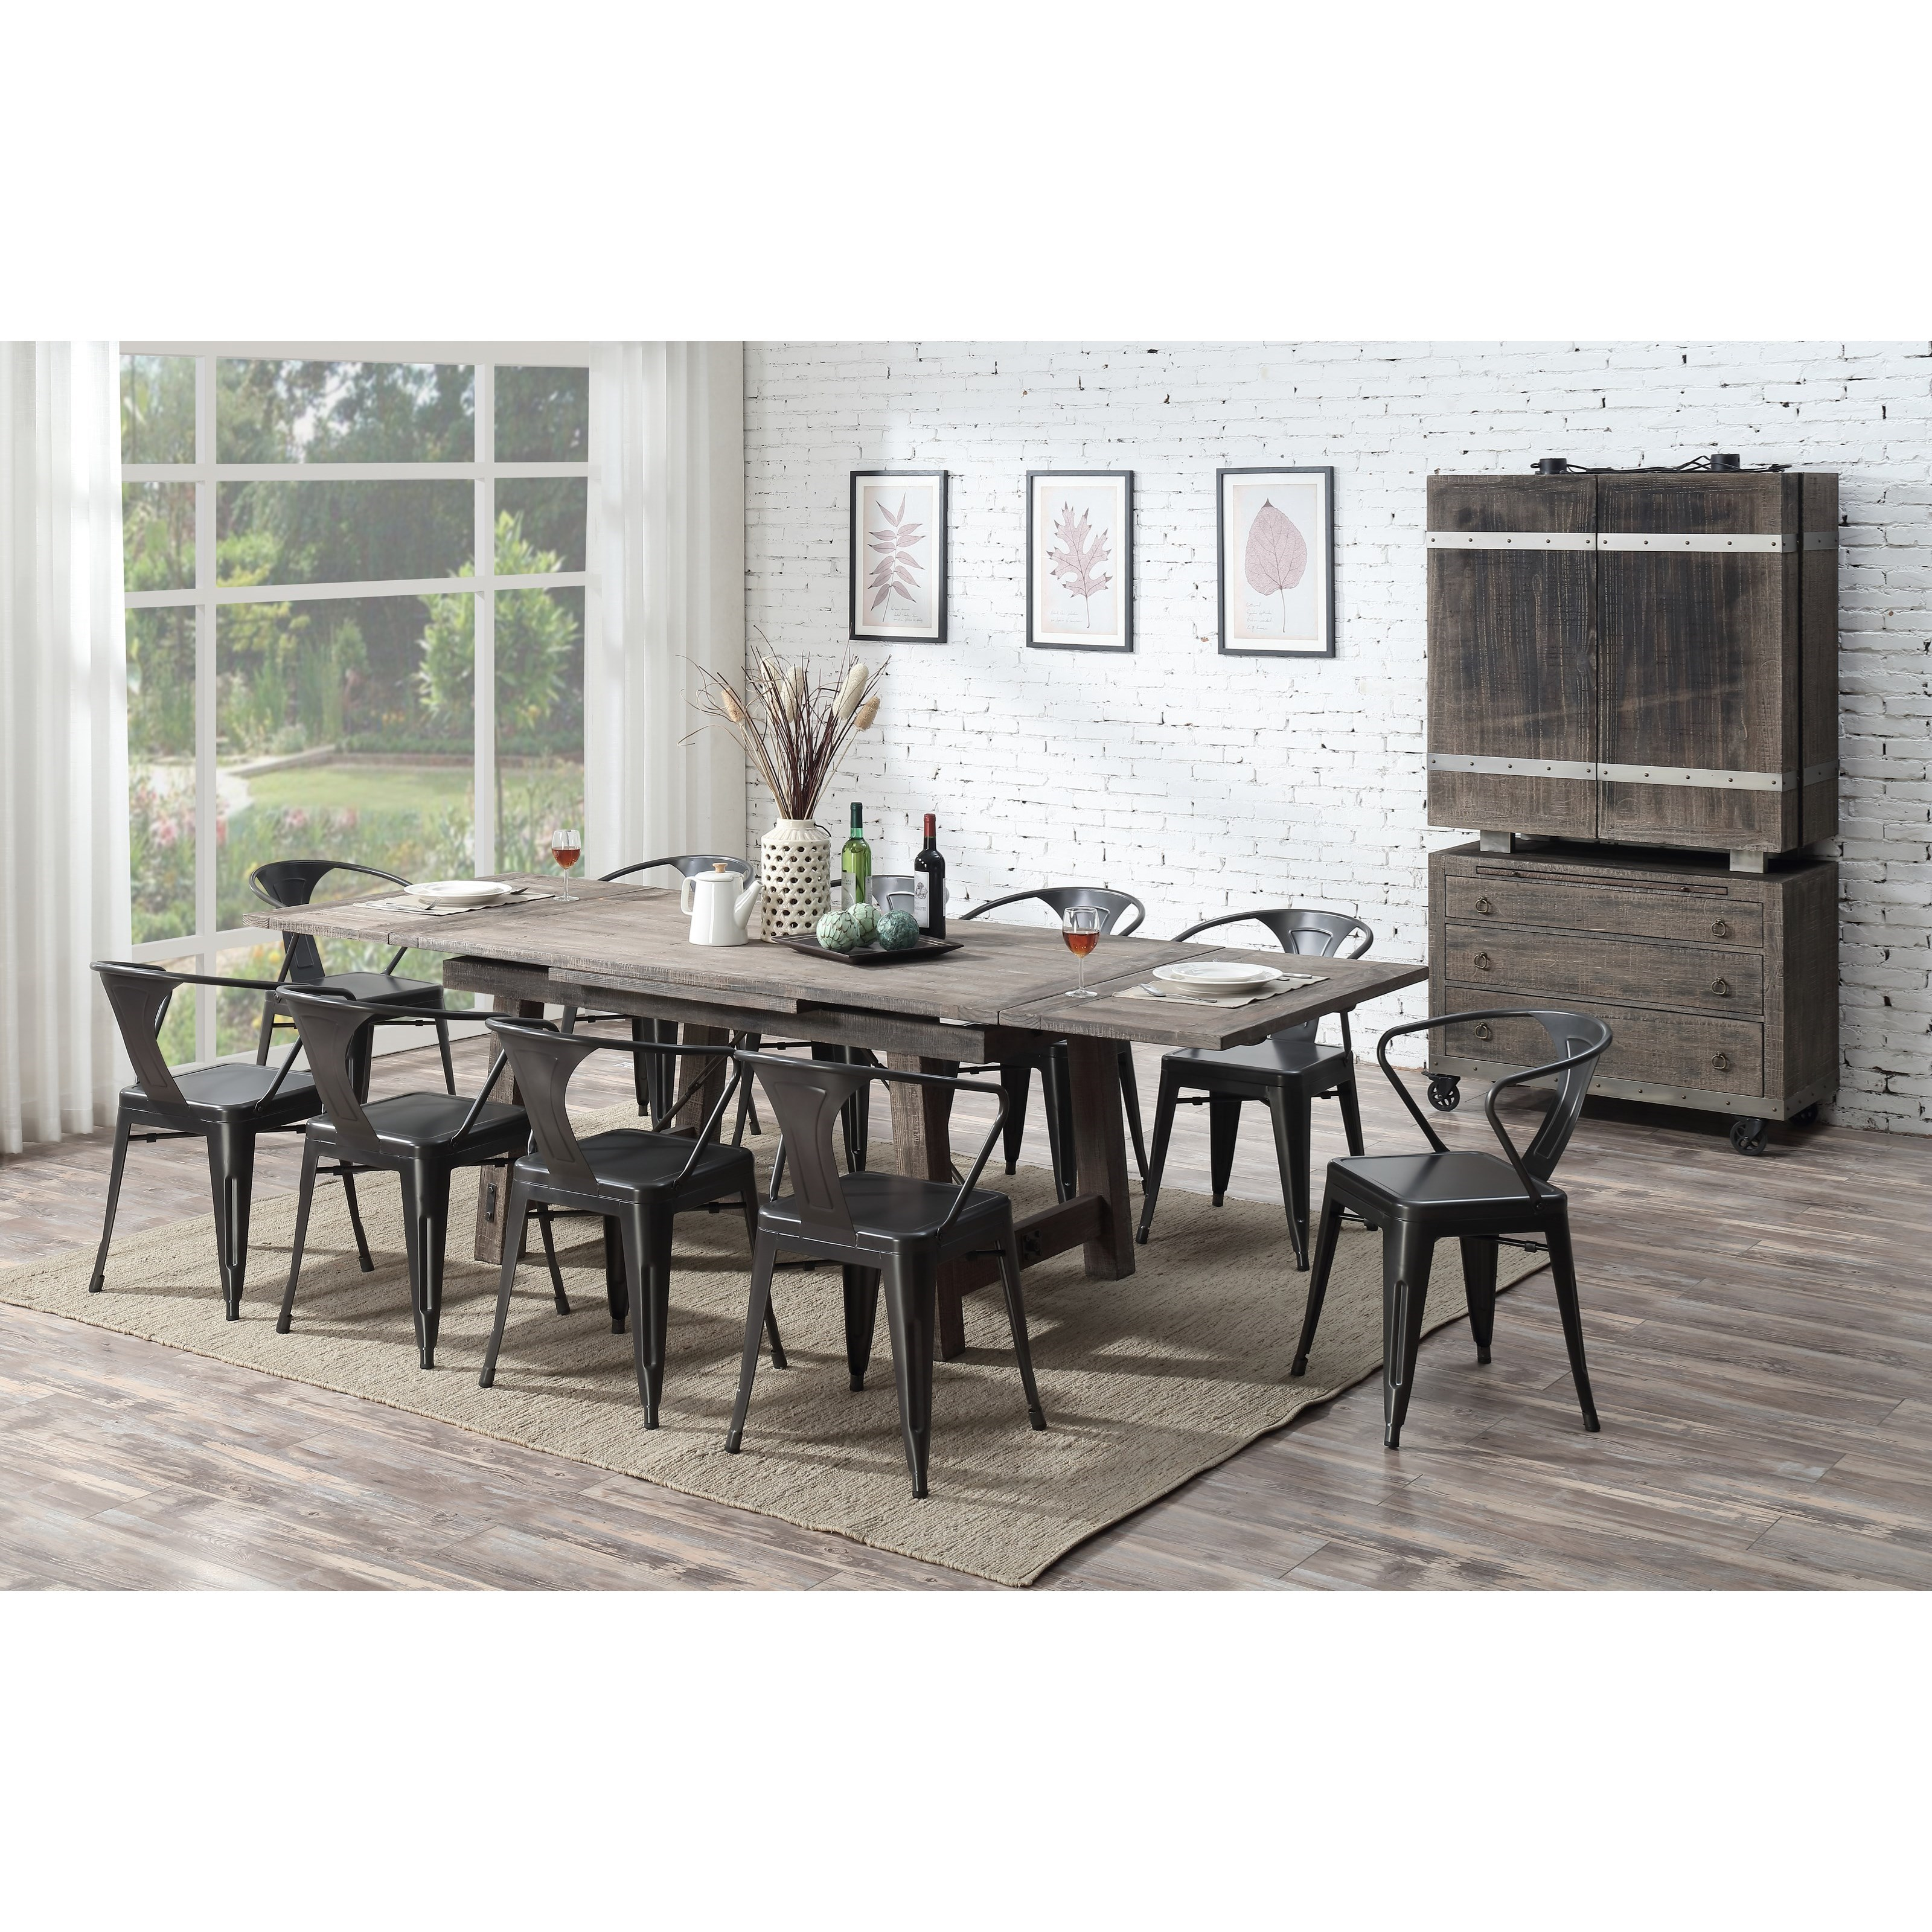 Dakota Dining Room Group by Emerald at Northeast Factory Direct